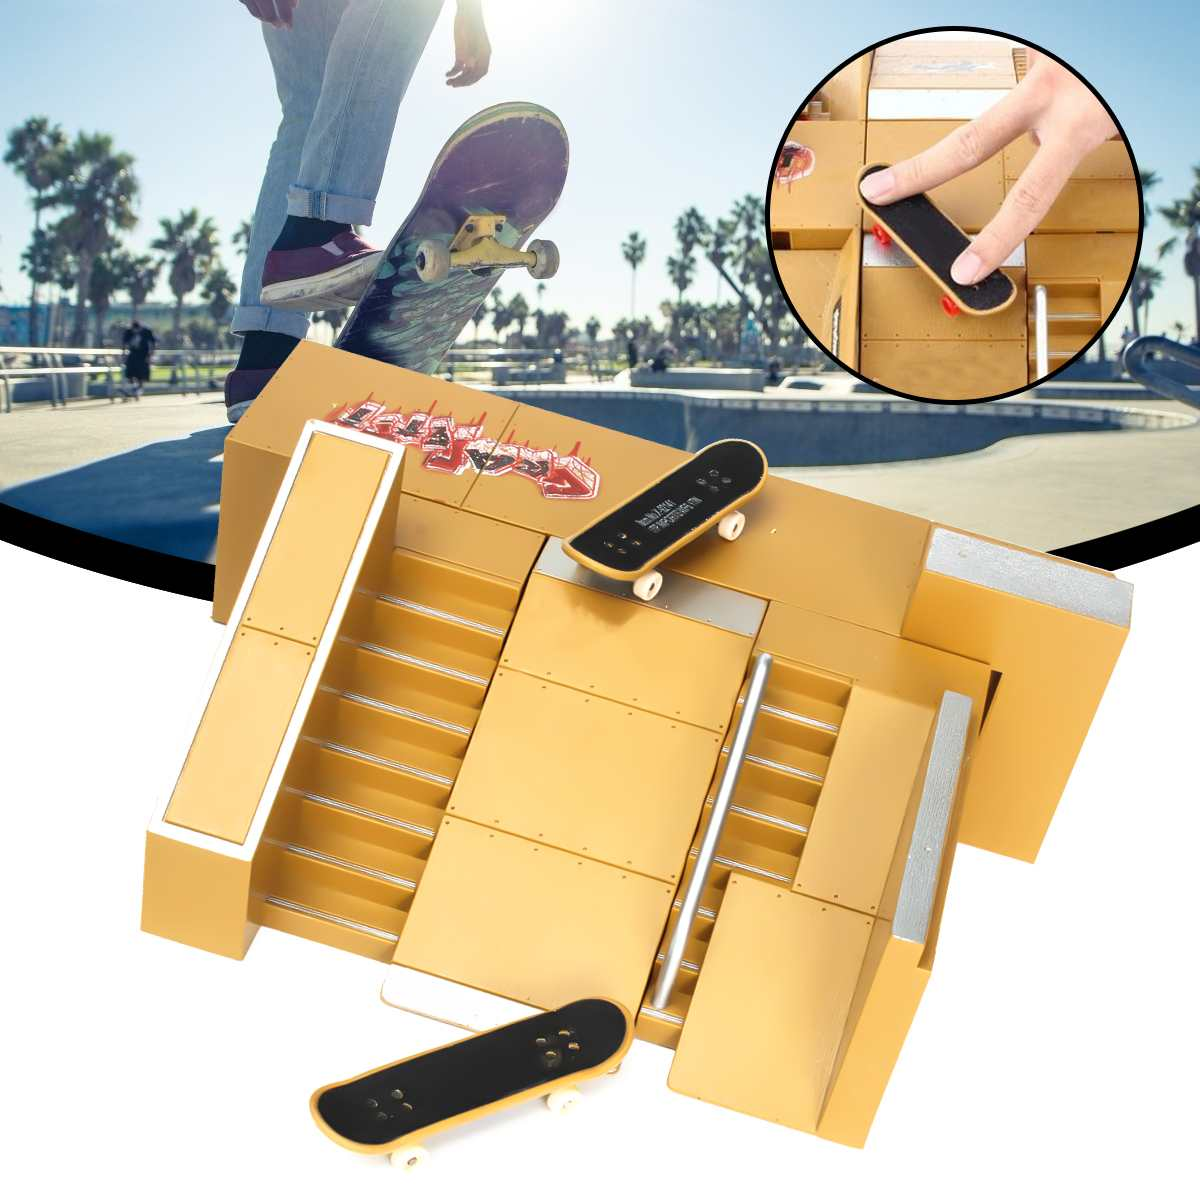 Fingerboard Skate Park Skateboard Mini Board Ultimate Trick Finger Ramps Kid Toy